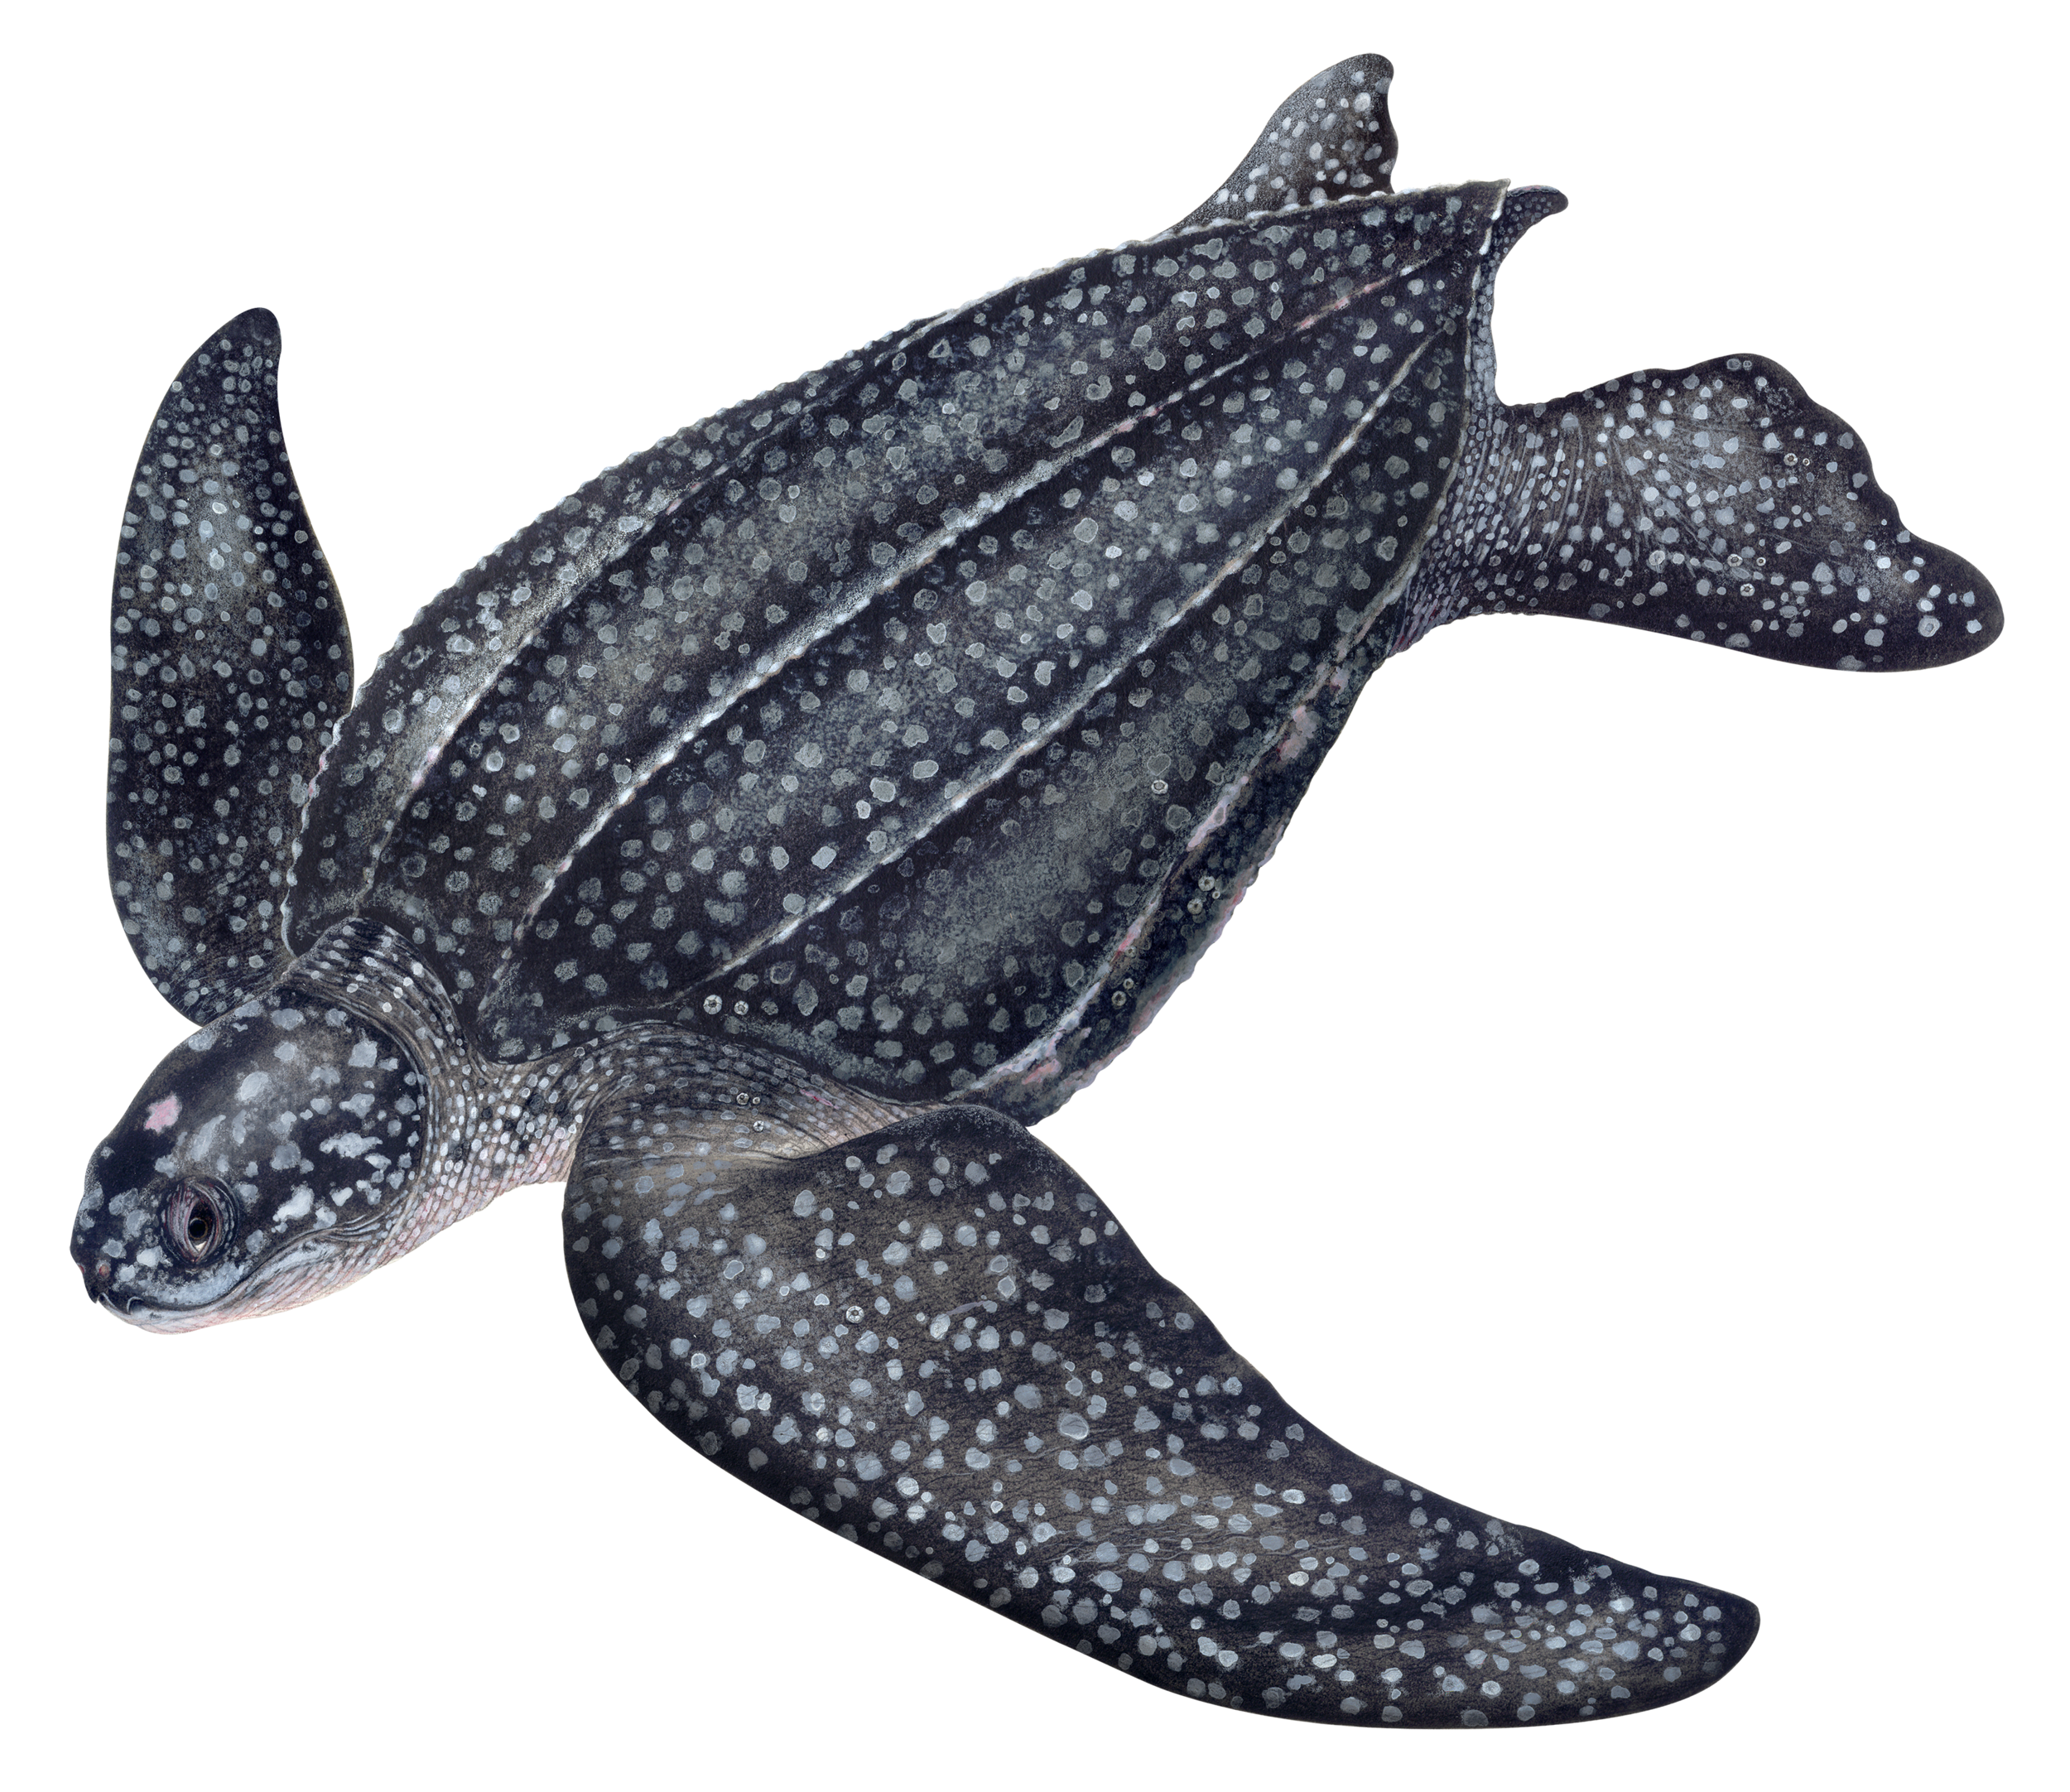 Illustration of a Leatherback